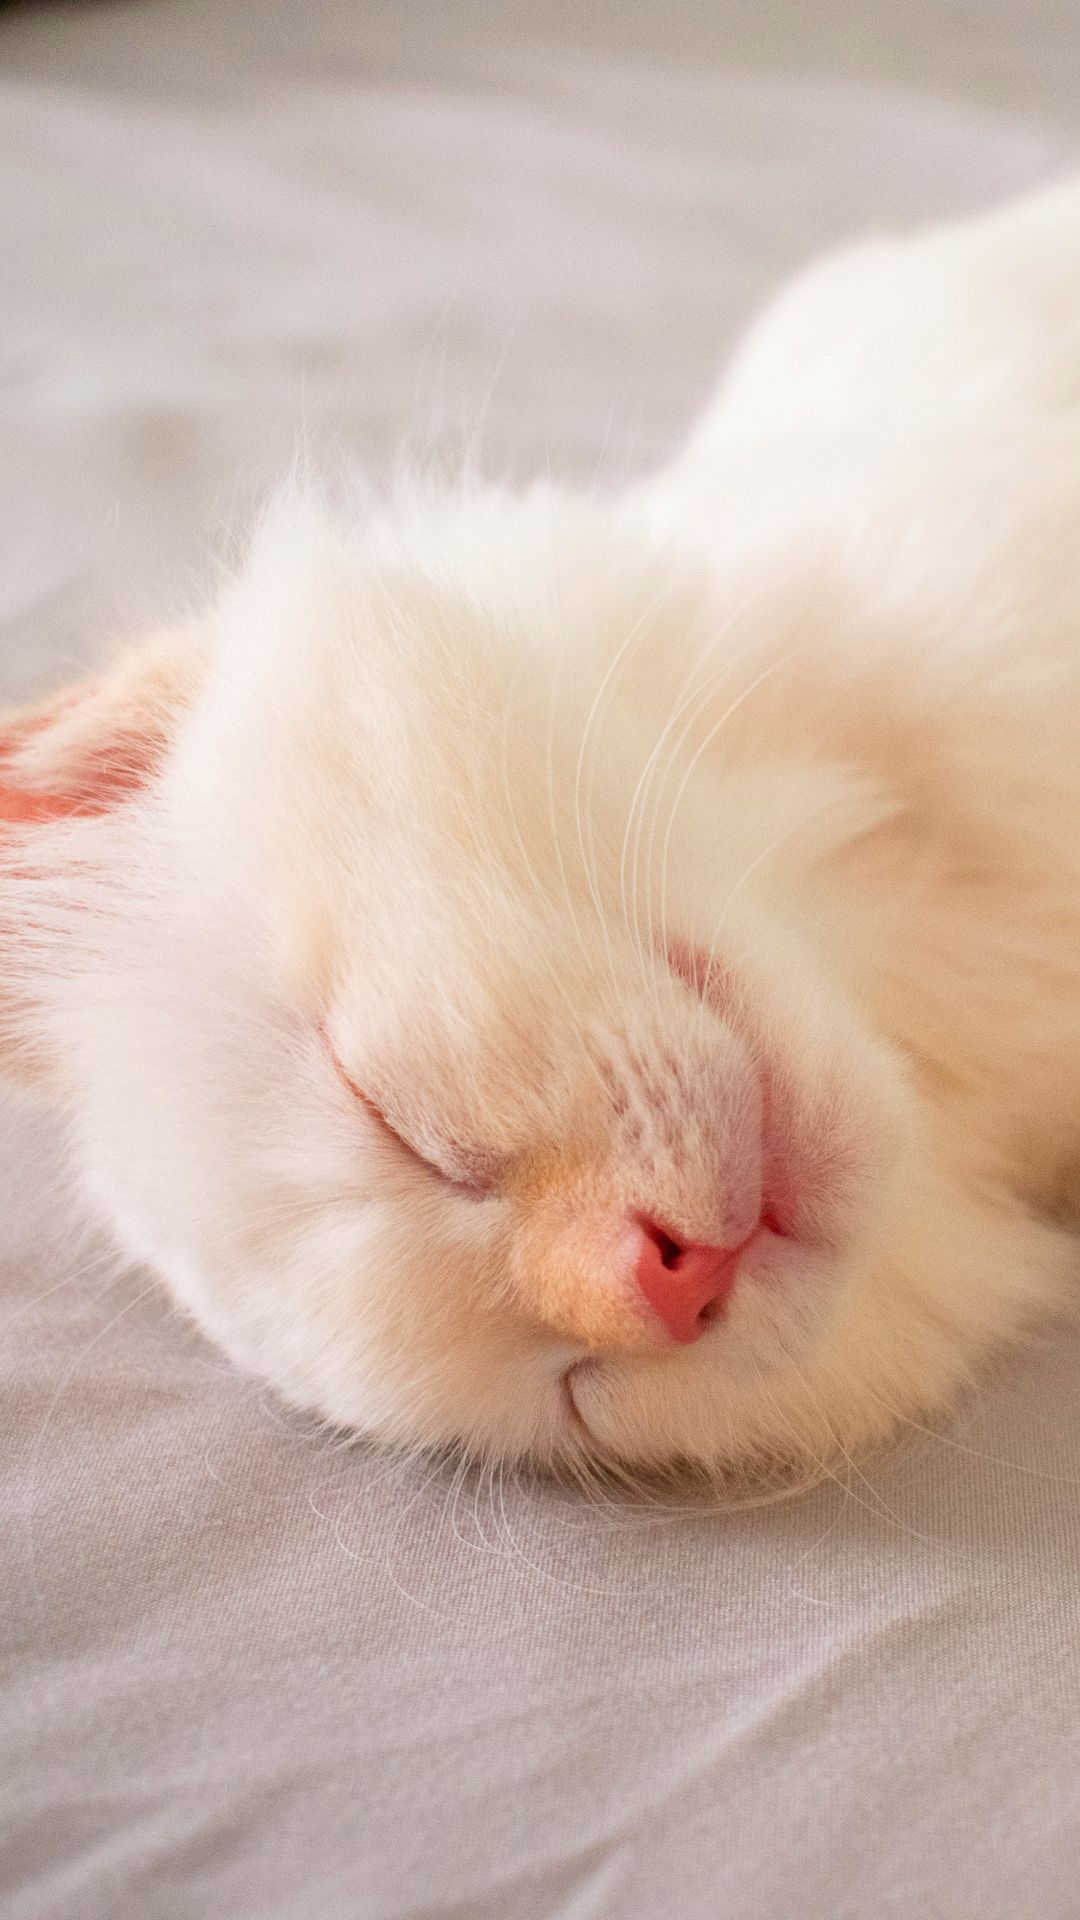 How Old Is My Cat In Human Years Sleeping Kitten Cute Cats And Kittens Cute Animals